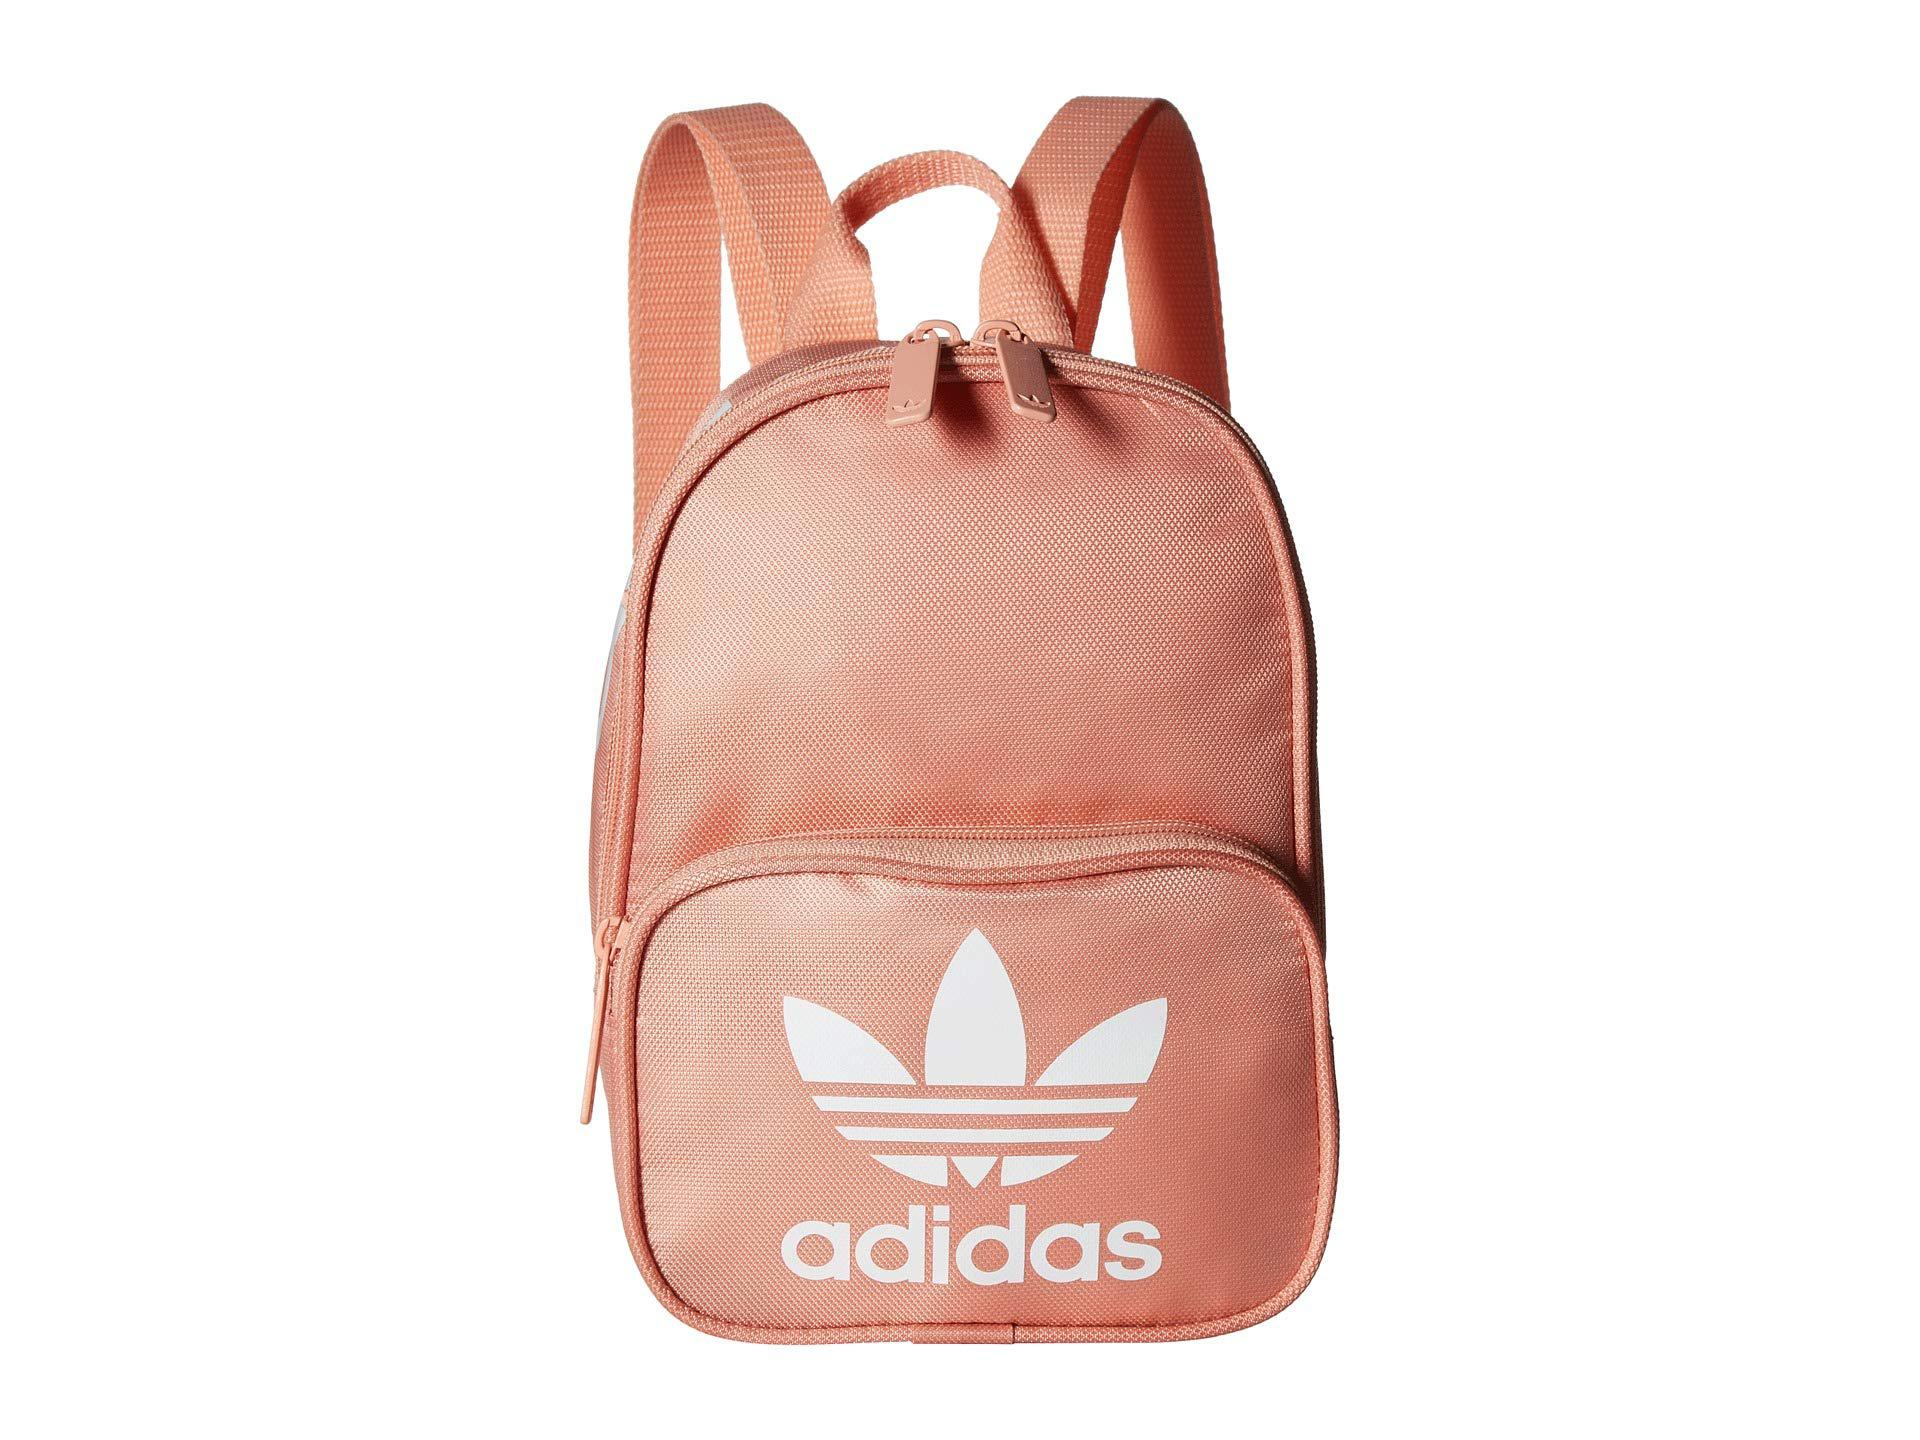 Lyst - adidas Originals Originals Santiago Mini Backpack (collegiate ... 6d37e56096e63